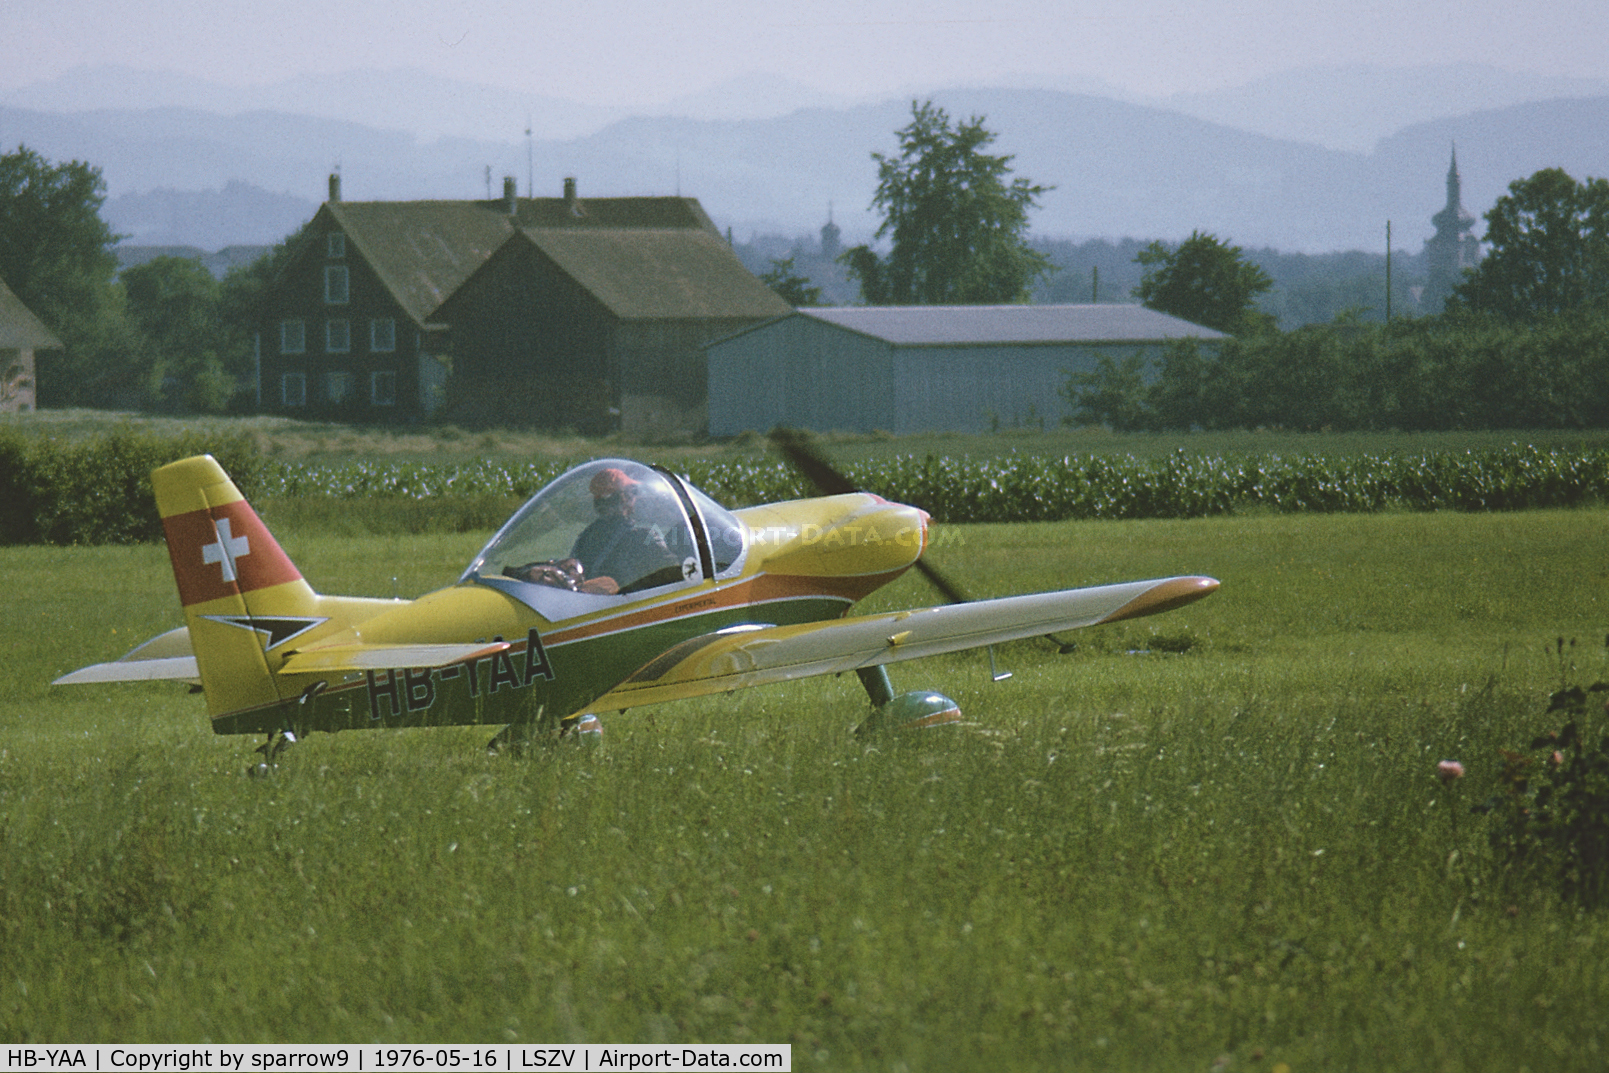 HB-YAA, 1975 Pagasus SW-01 C/N SW-01, At Sitterdorf airfield. Scanned from a color-negative.